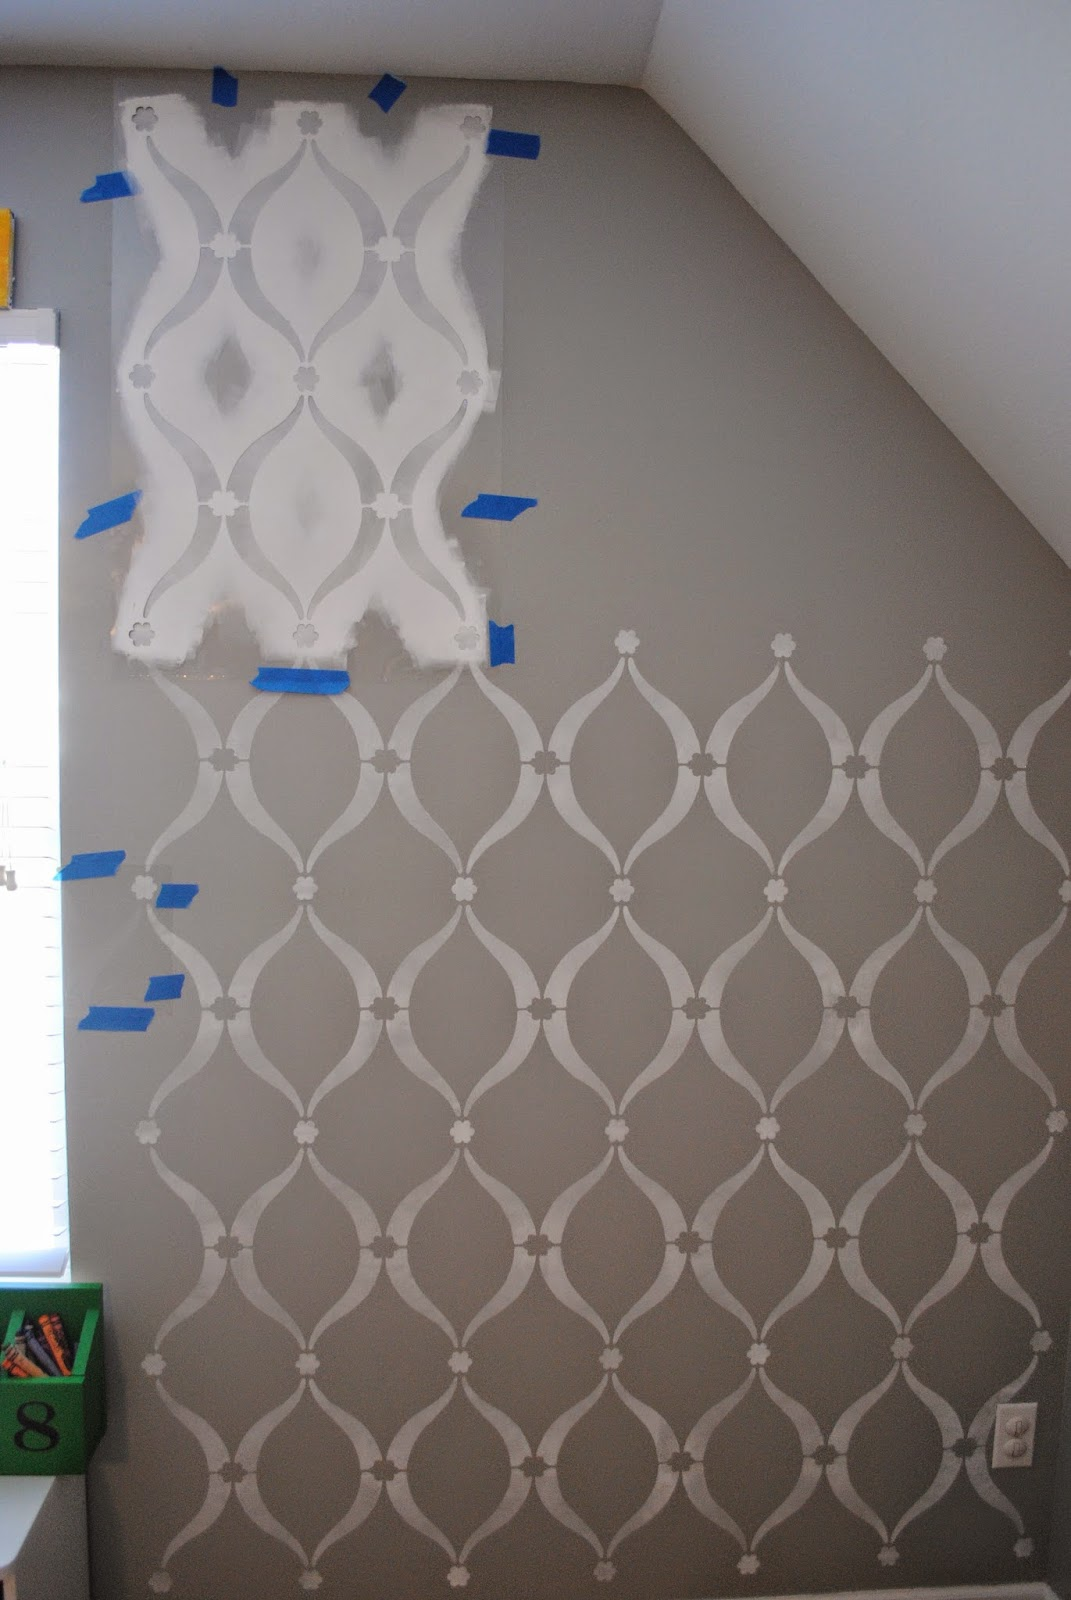 Wall Stencil Patterns Hobby Lobby : Upside of chaos cutting edge stencil review for our playroom